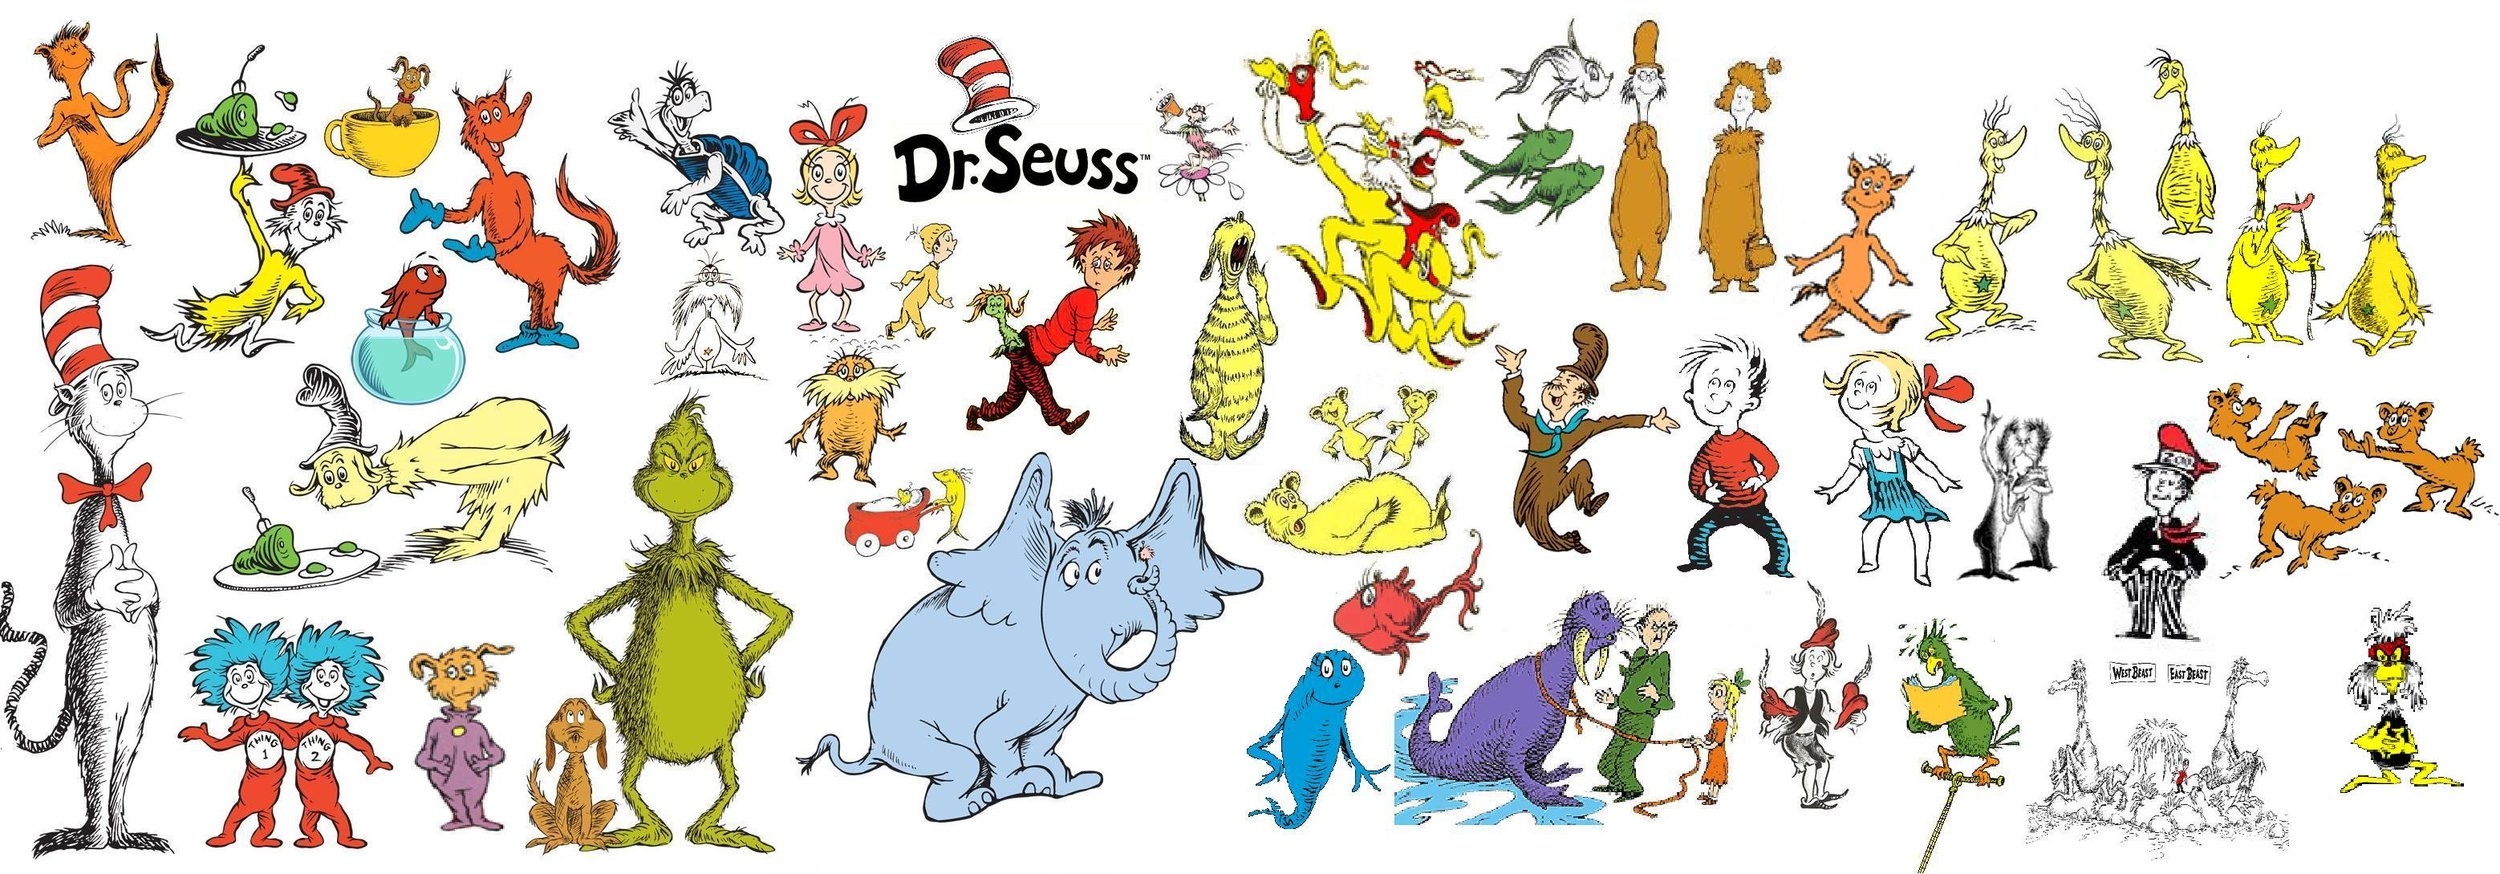 suess-cover-image-1.jpg